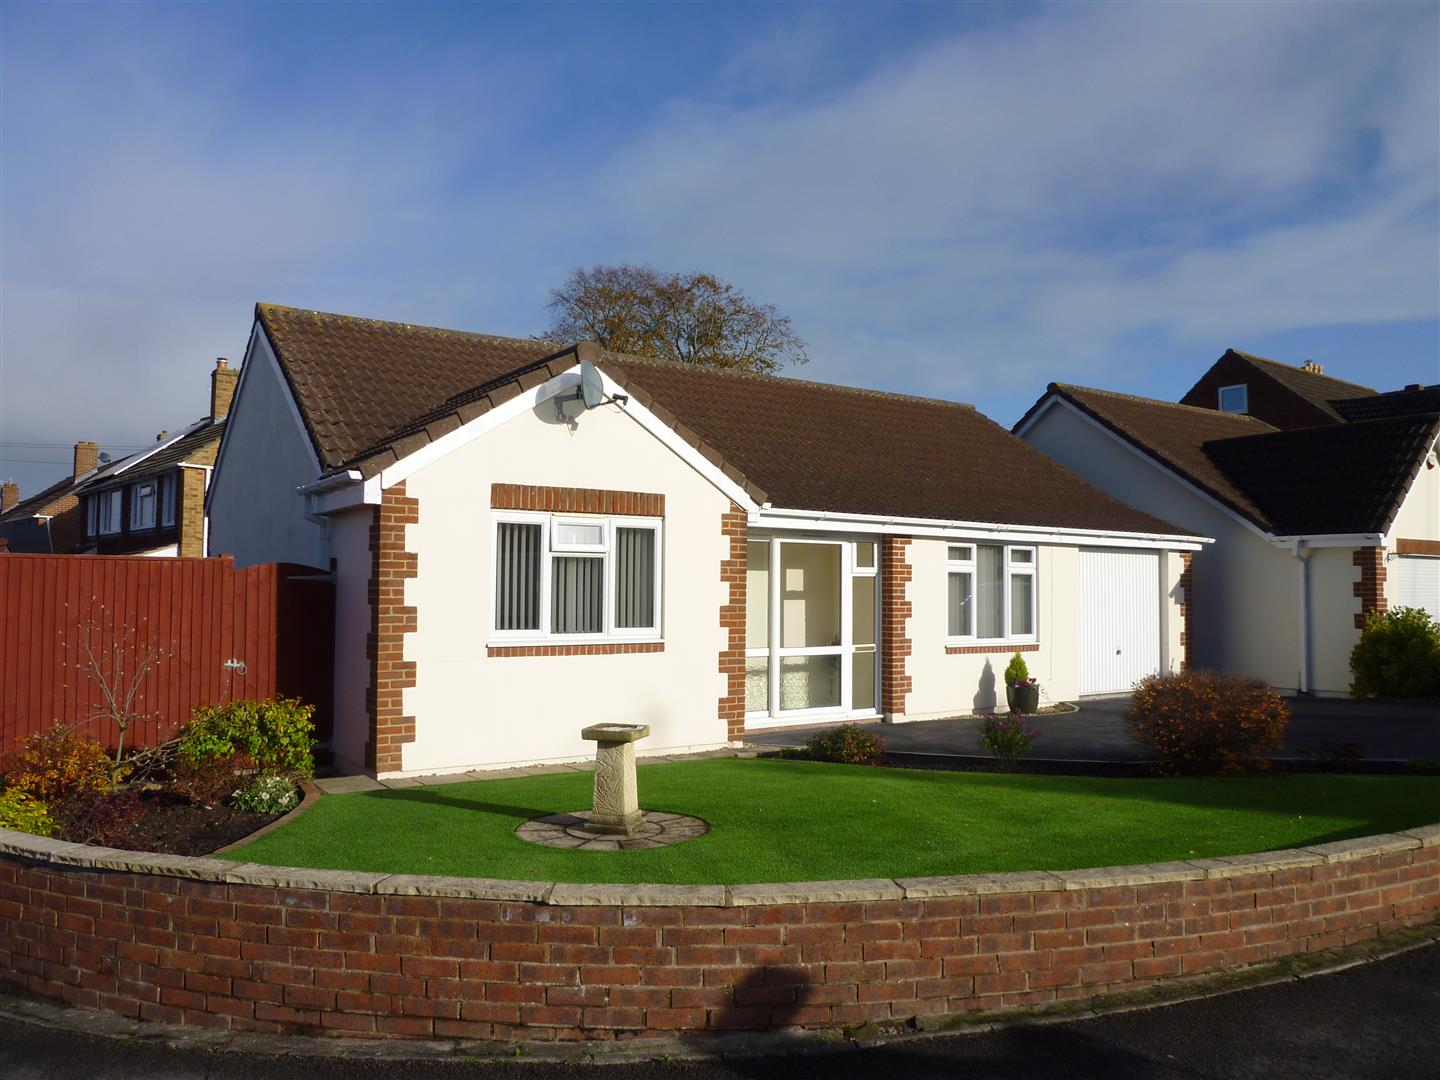 3 Bedrooms Detached Bungalow for sale in TROWBRIDGE